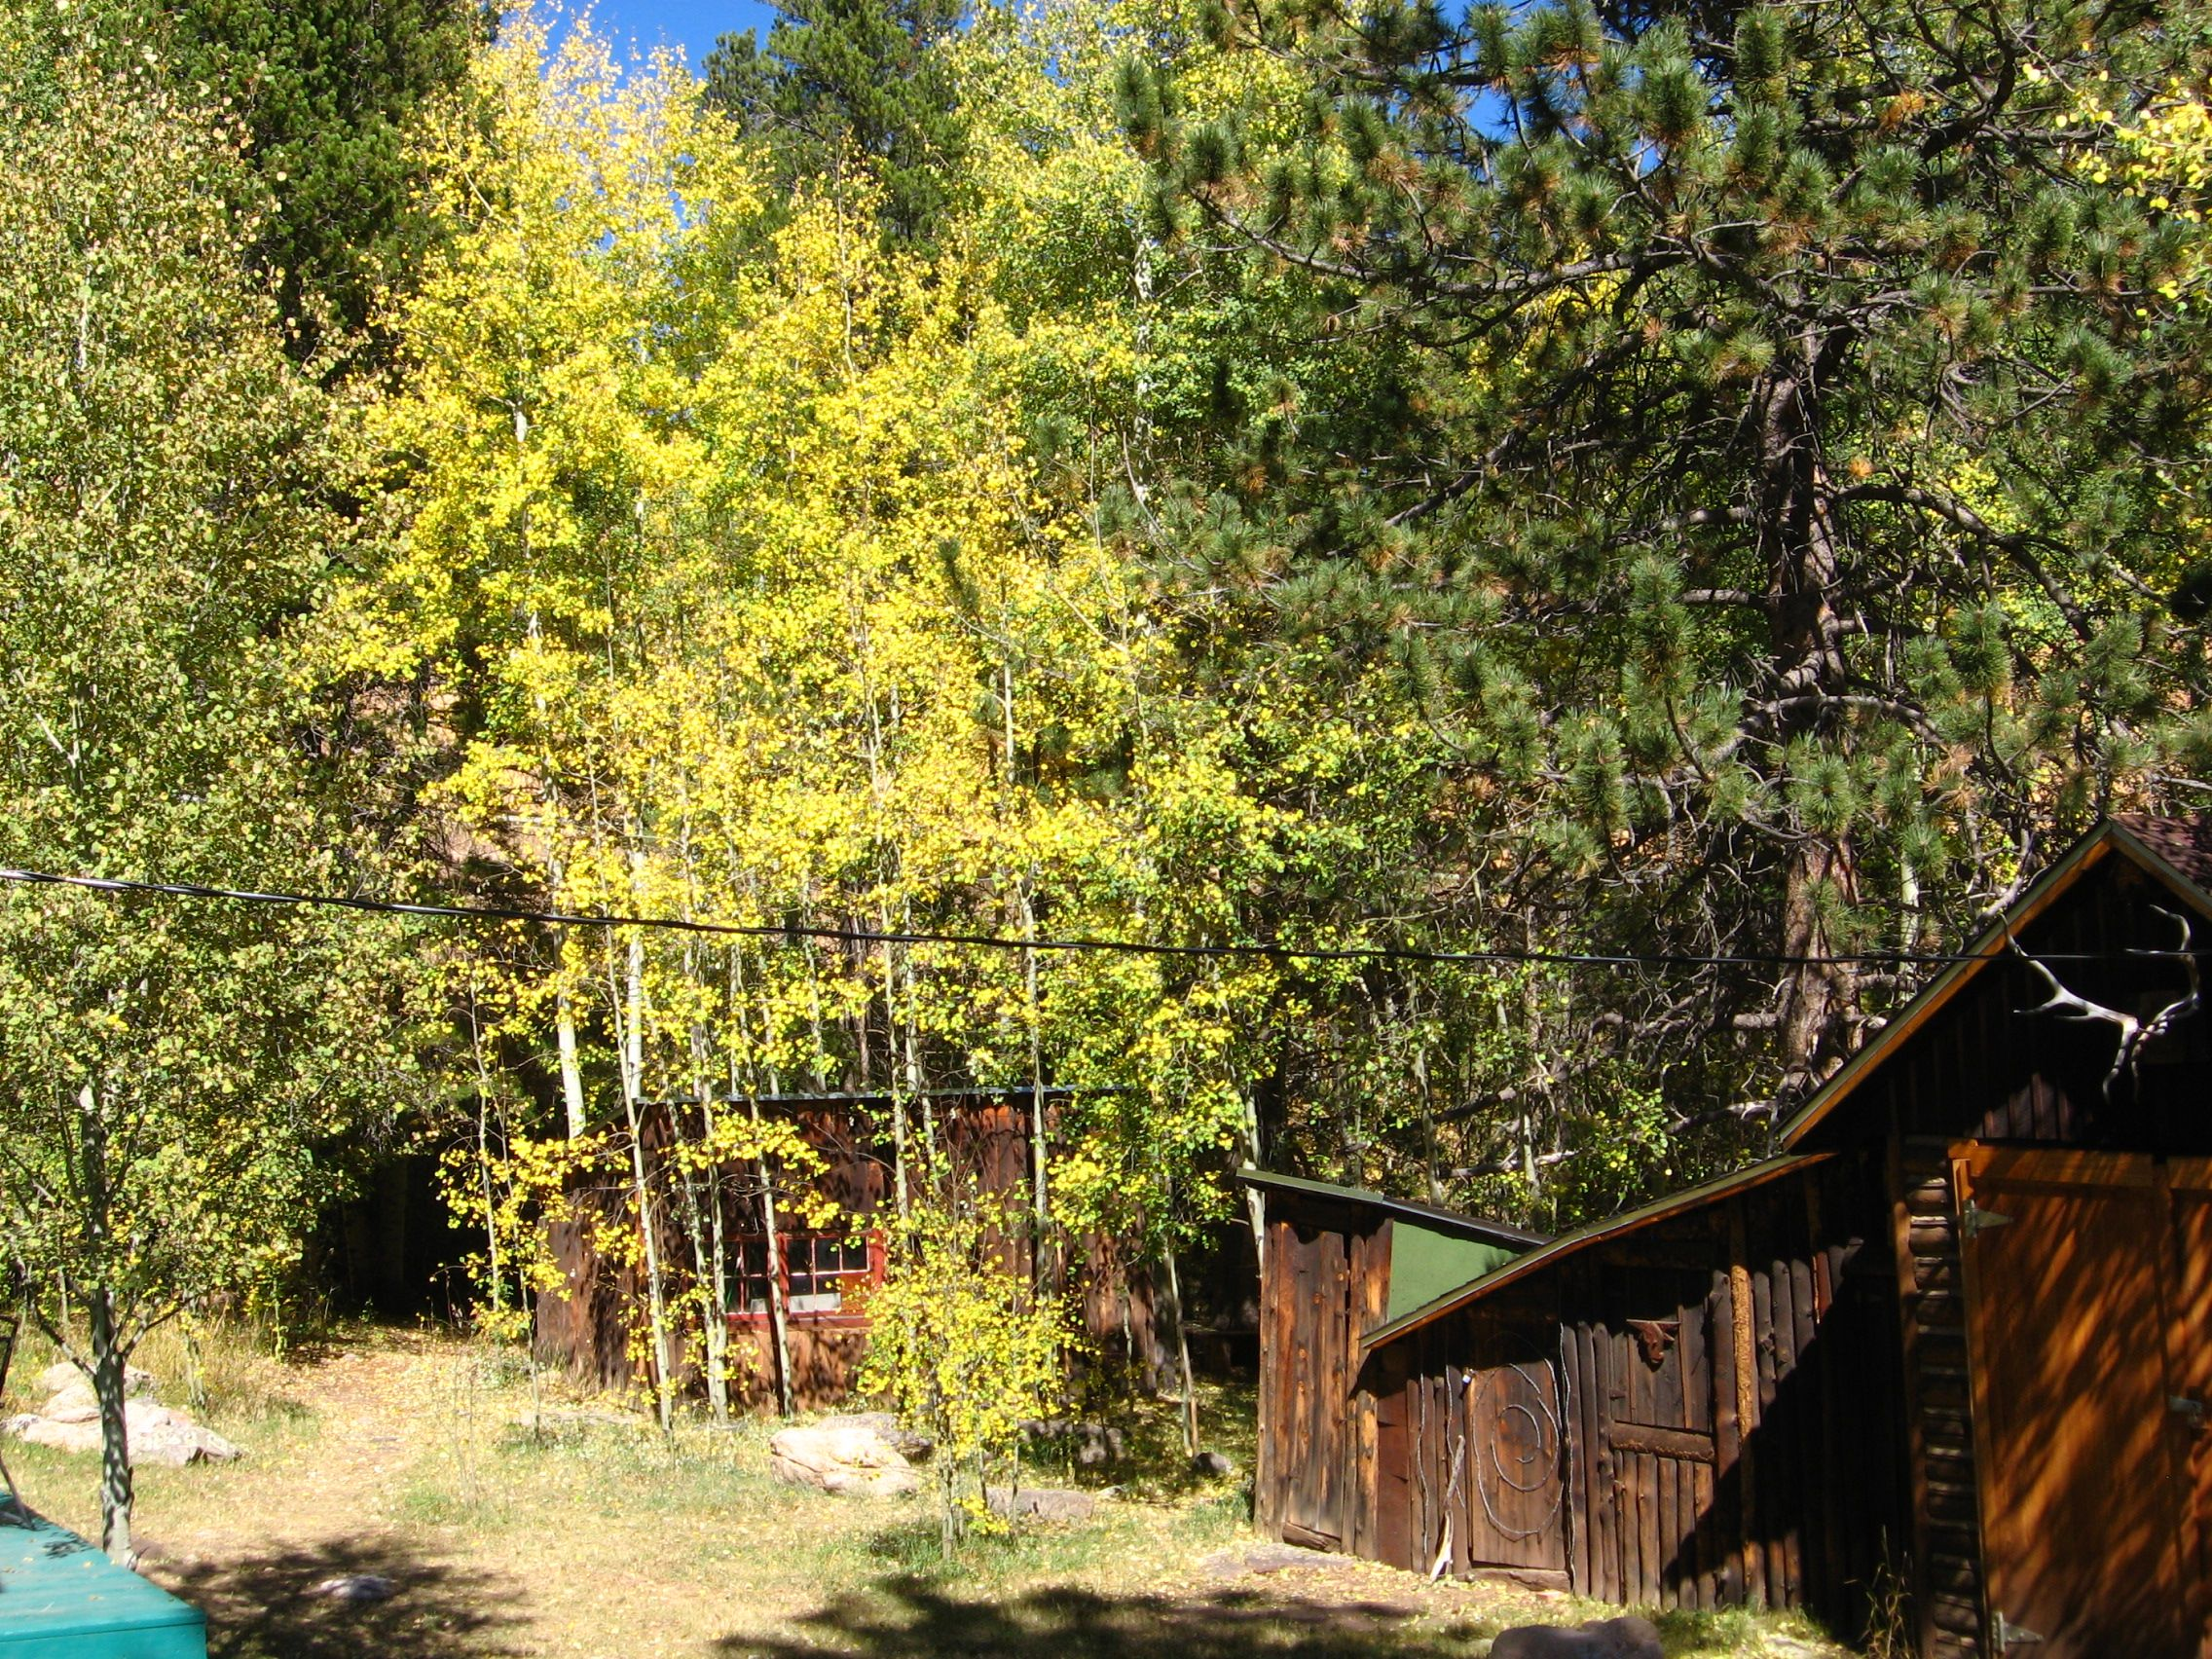 henry b sept allenspark lodge colorado park estes cabins